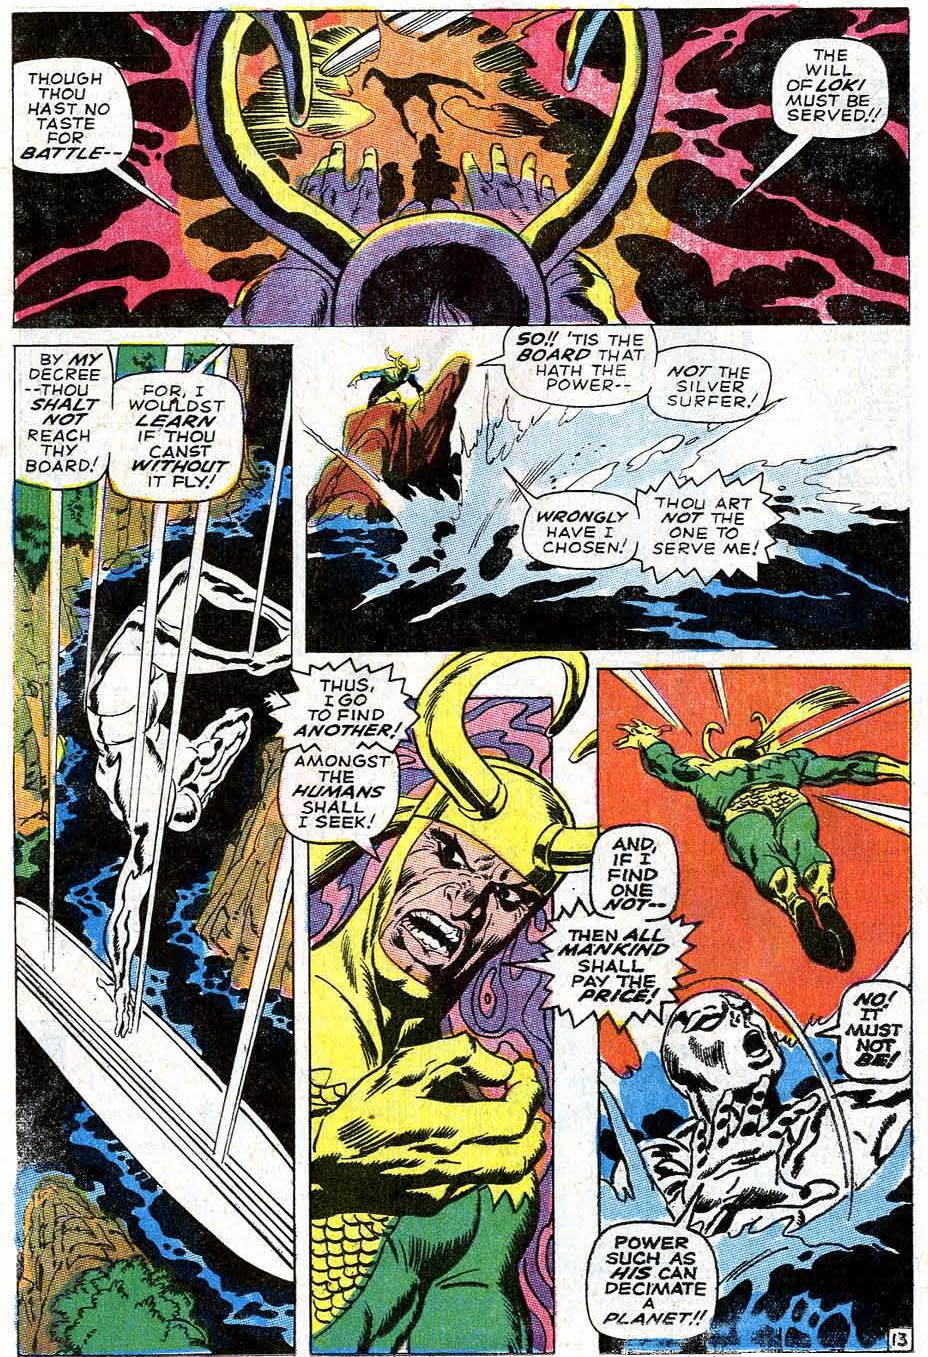 Silver Surfer #4 (February, 1969) | Attack of the 50 Year